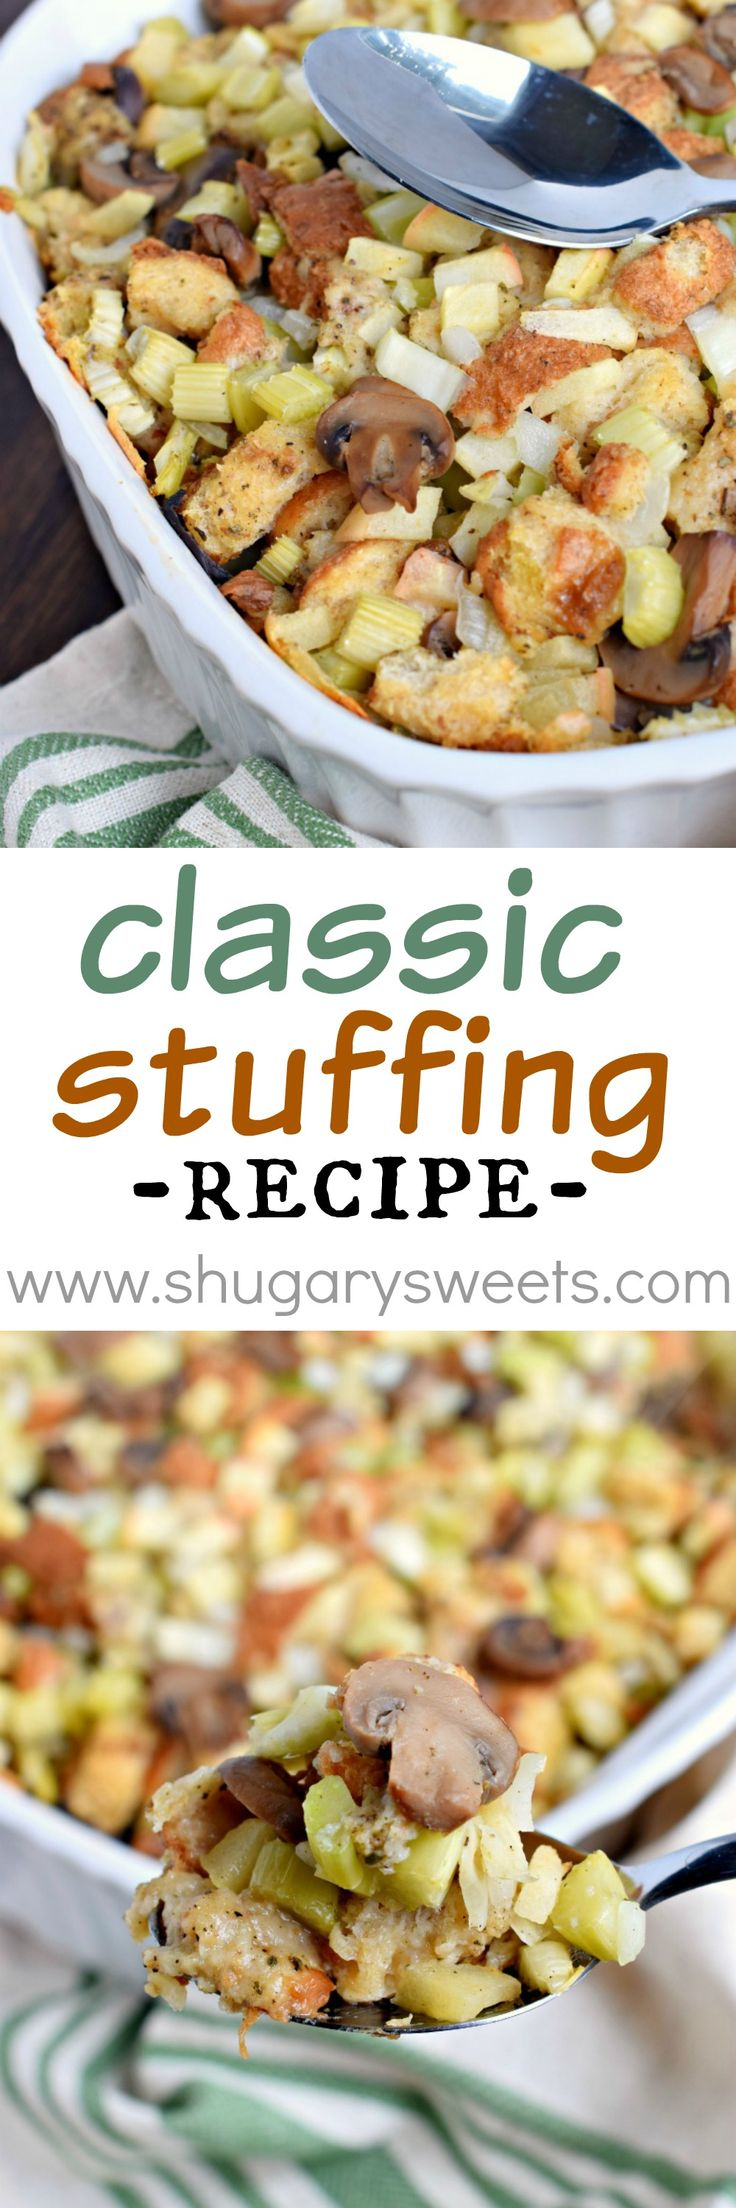 Whether making this for a Sunday night dinner or Thanksgiving, this Classic Stuffing Recipe is delicious! Can be made a day ahead of time too!